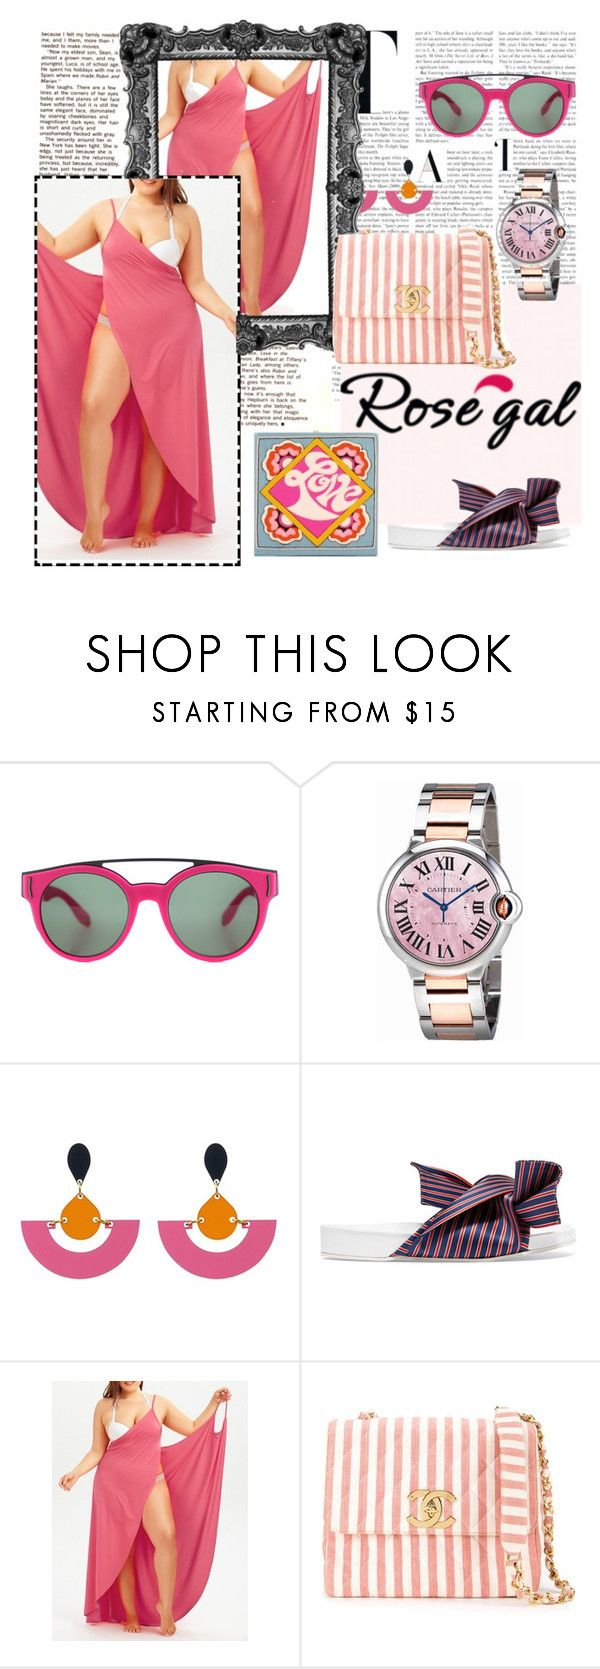 """""""Love Production"""" by chelsofly on Polyvore featuring Givenchy, Cartier, John Lewis, N°21, Chanel, Olympia Le-Tan, Pink, poolparty, plussize and coverUp"""